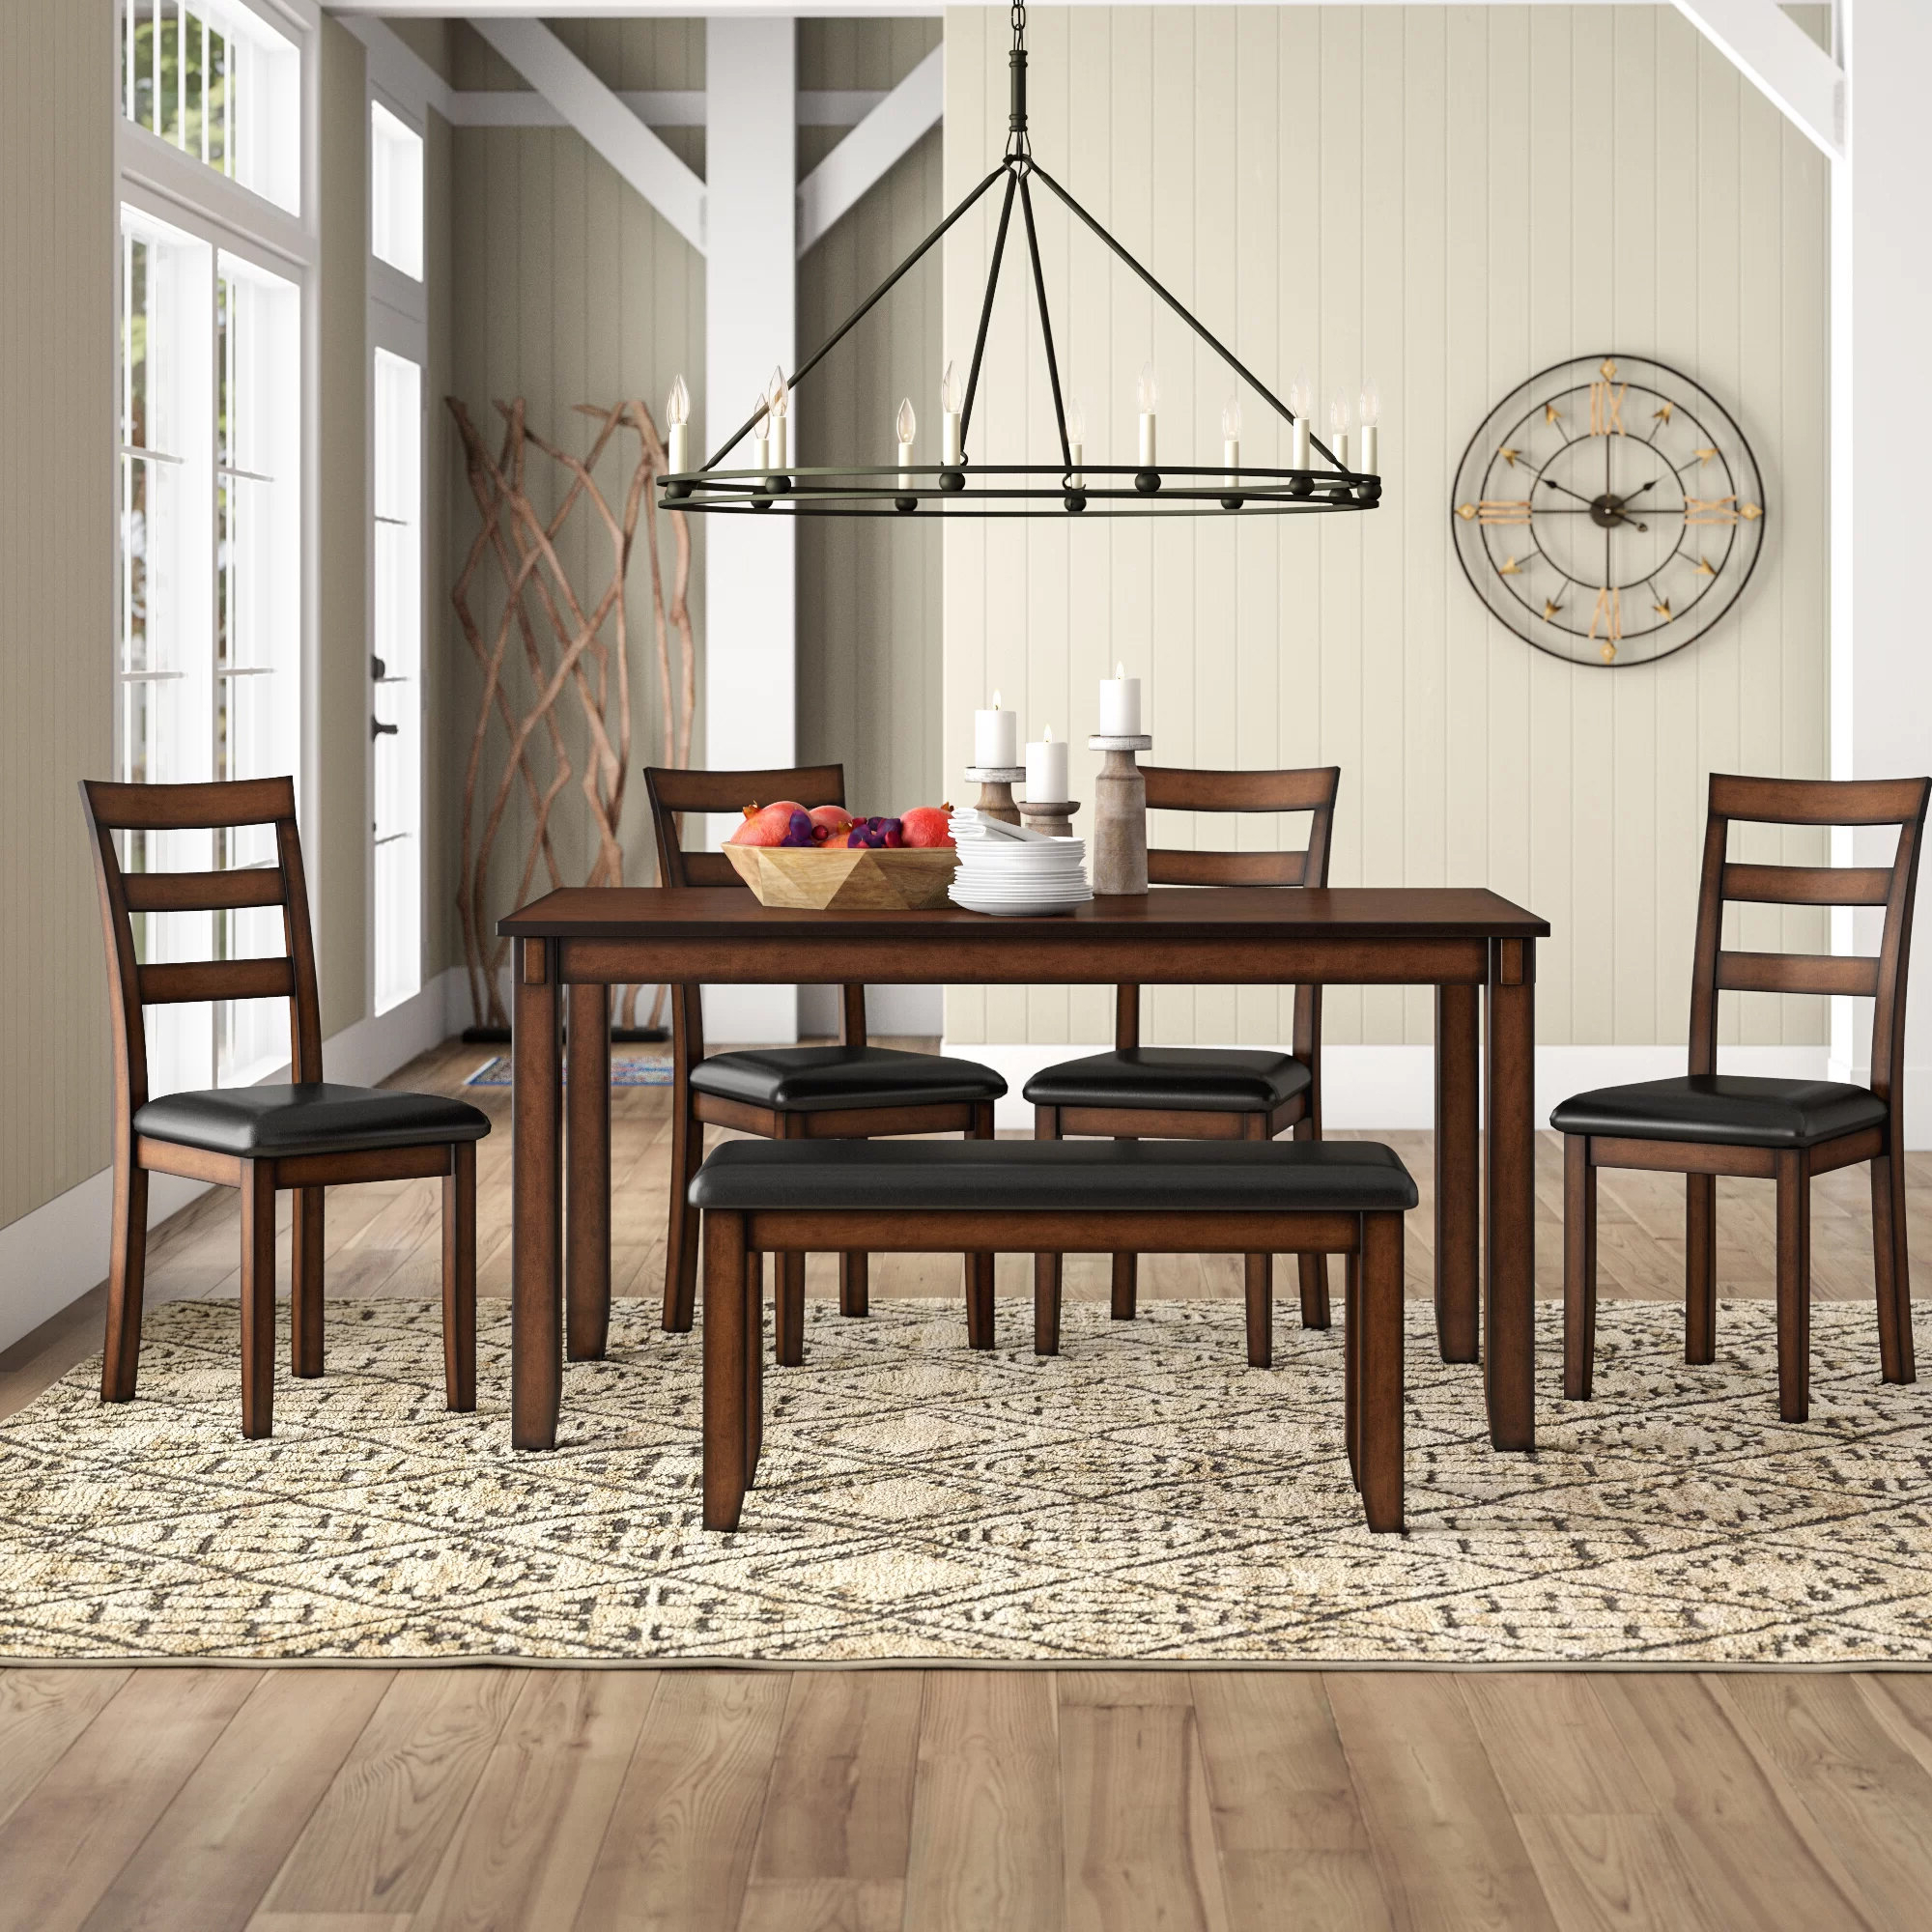 Wayfair Inside Shepparton Vintage 3 Piece Dining Sets (View 11 of 25)